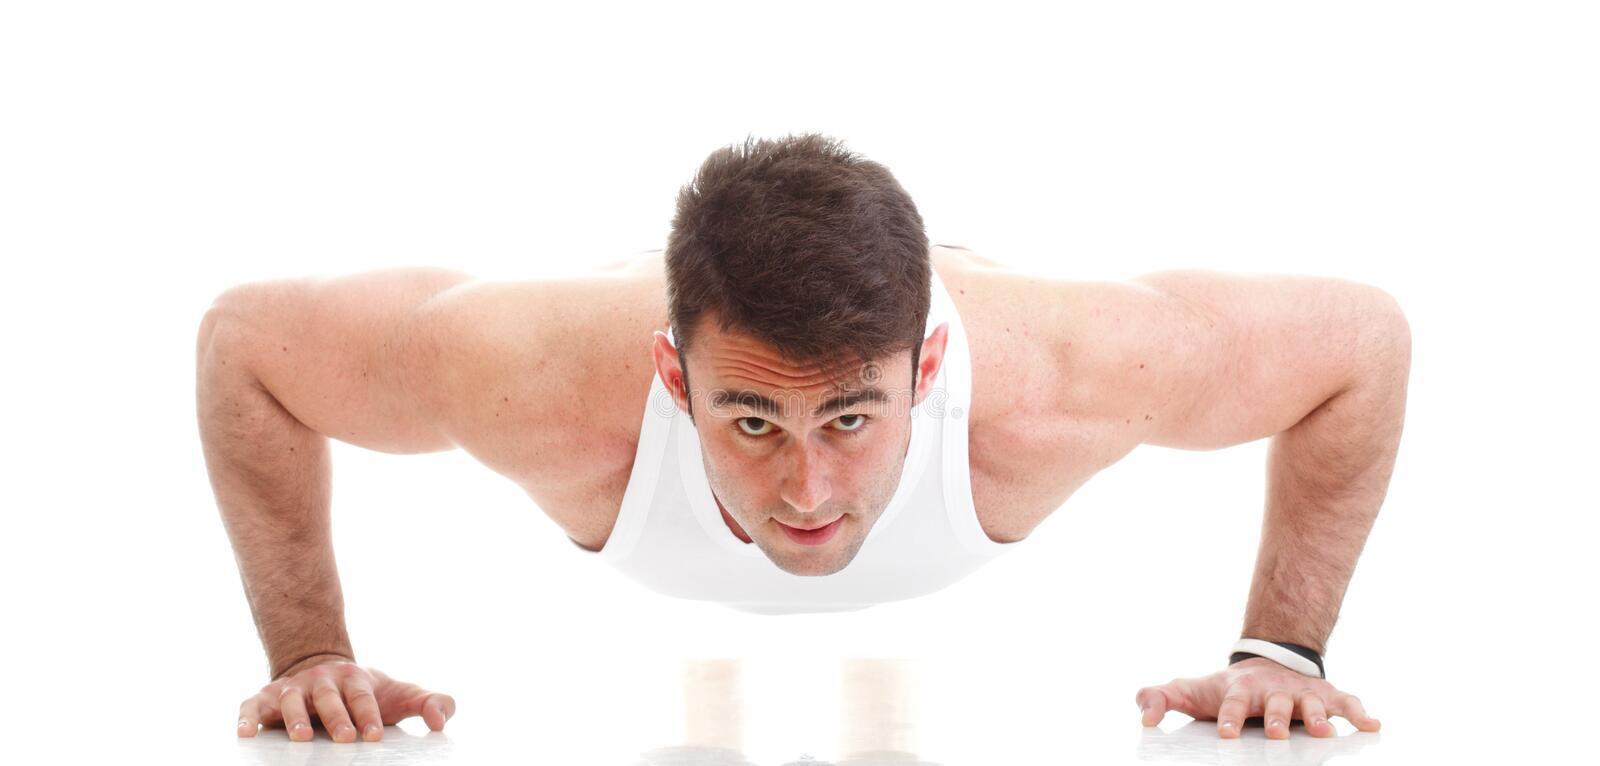 Young fashion sport man fitness muscle model guy exercise isolat. Young fashion sport man, fitness muscle model guy making push ups exercise white background royalty free stock image